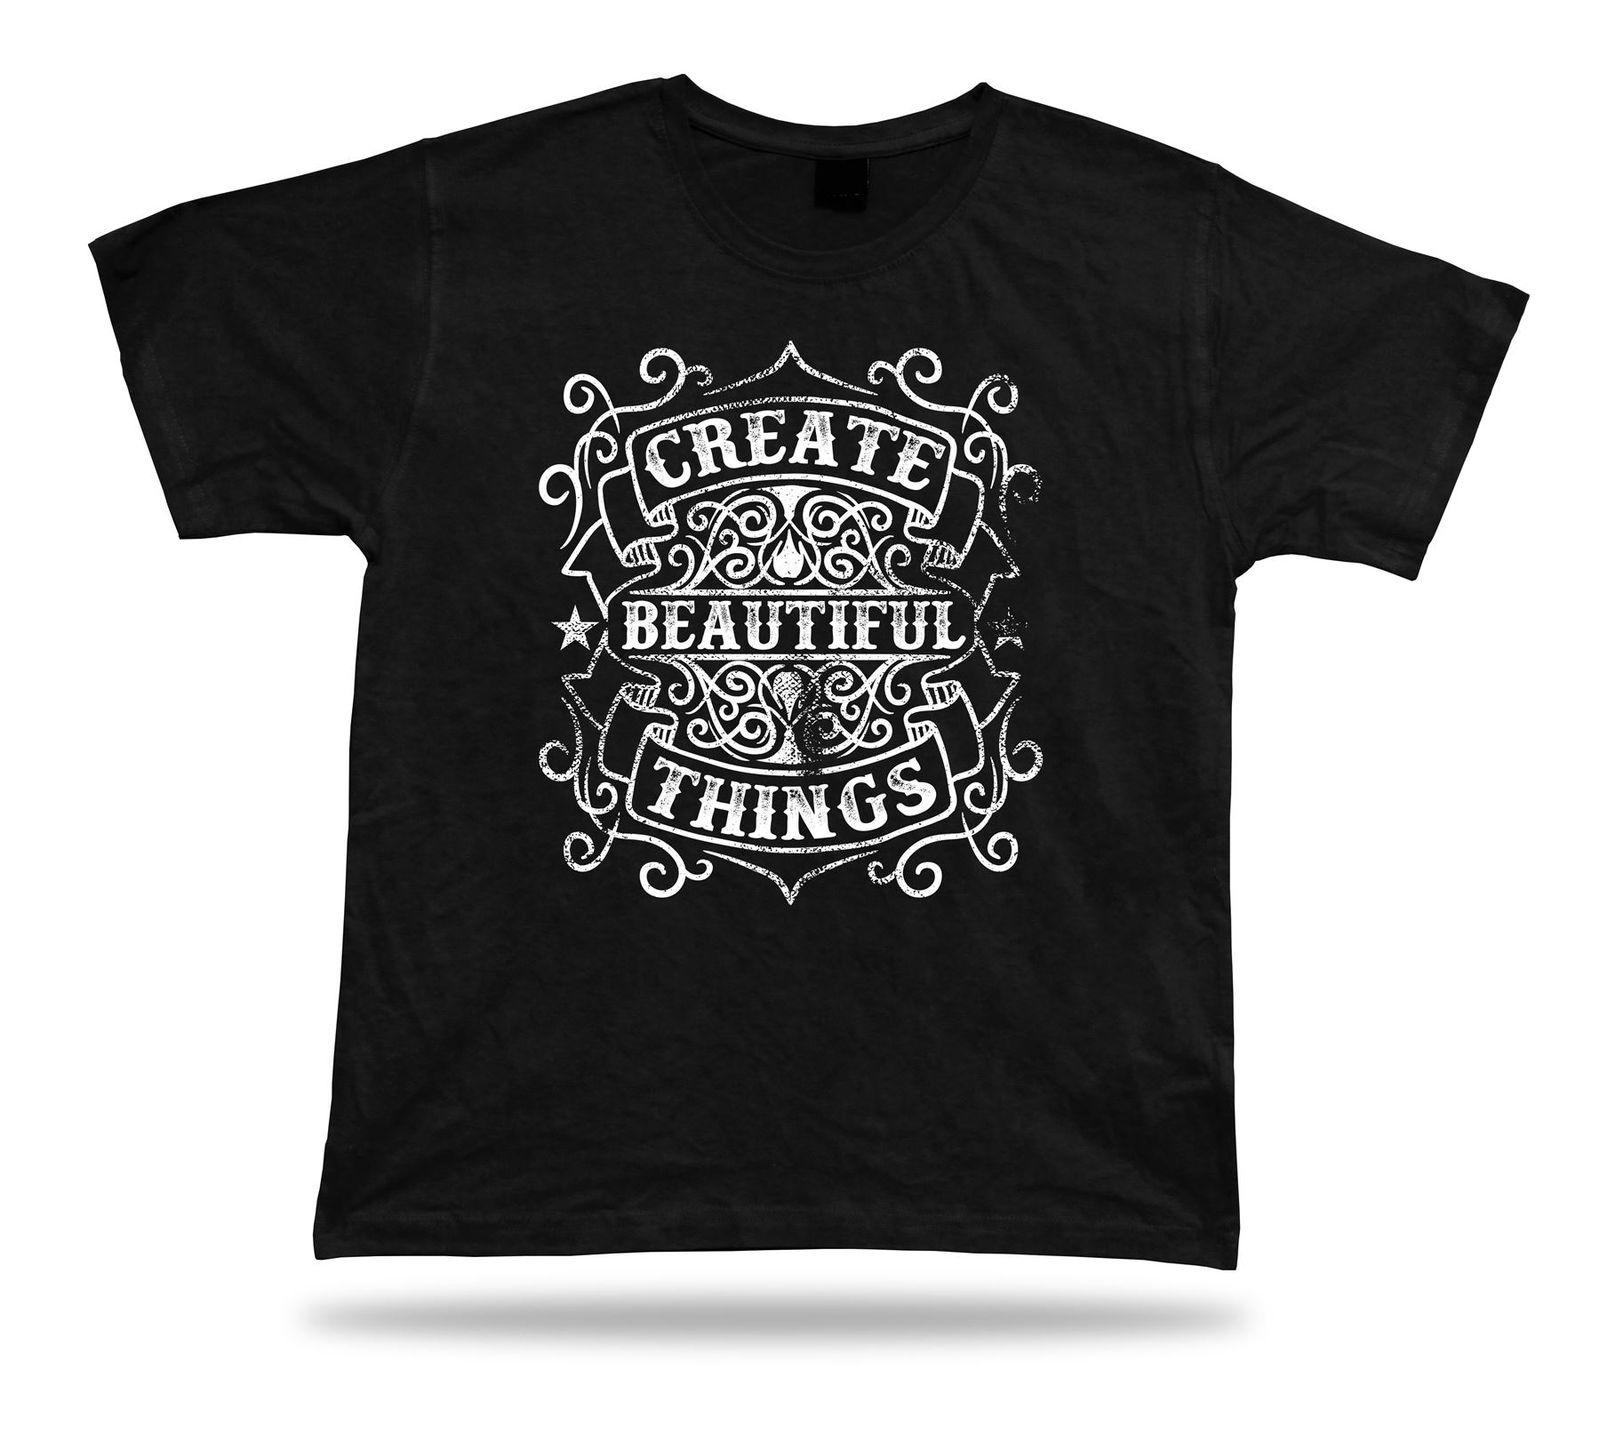 9d5edf8ec63 Tshirt Tee Shirt Birthday Gift Idea Creat Beautiful Things Emblam Quote  Wisdom Funny 100% Cotton T Shirt Denim Clothes Camiseta T Shirt T Shirt  Slogan Daily ...